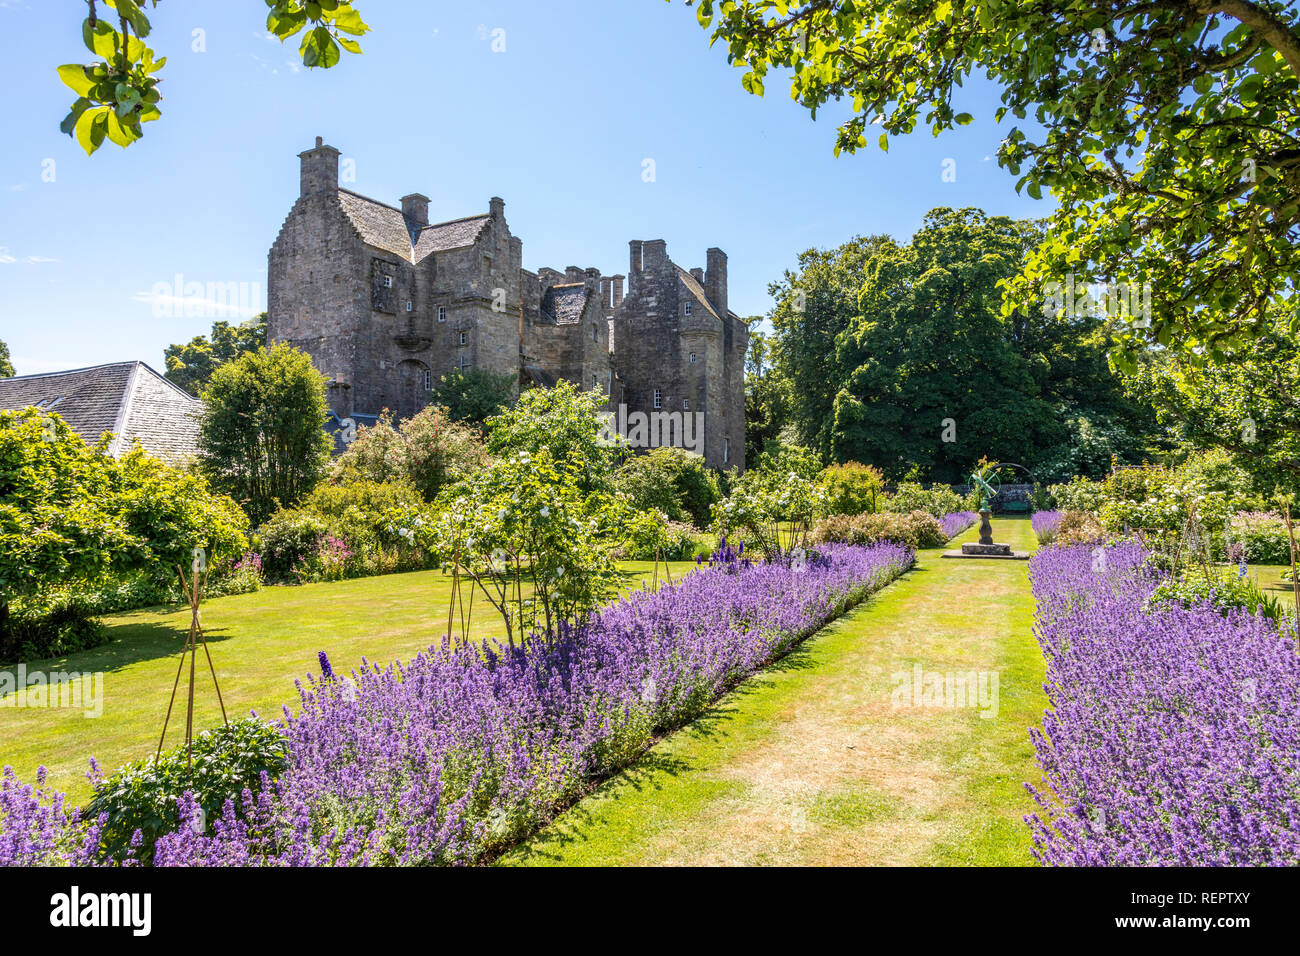 The gardens in summertime at Kellie Castle, Fife, Scotland UK - Stock Image